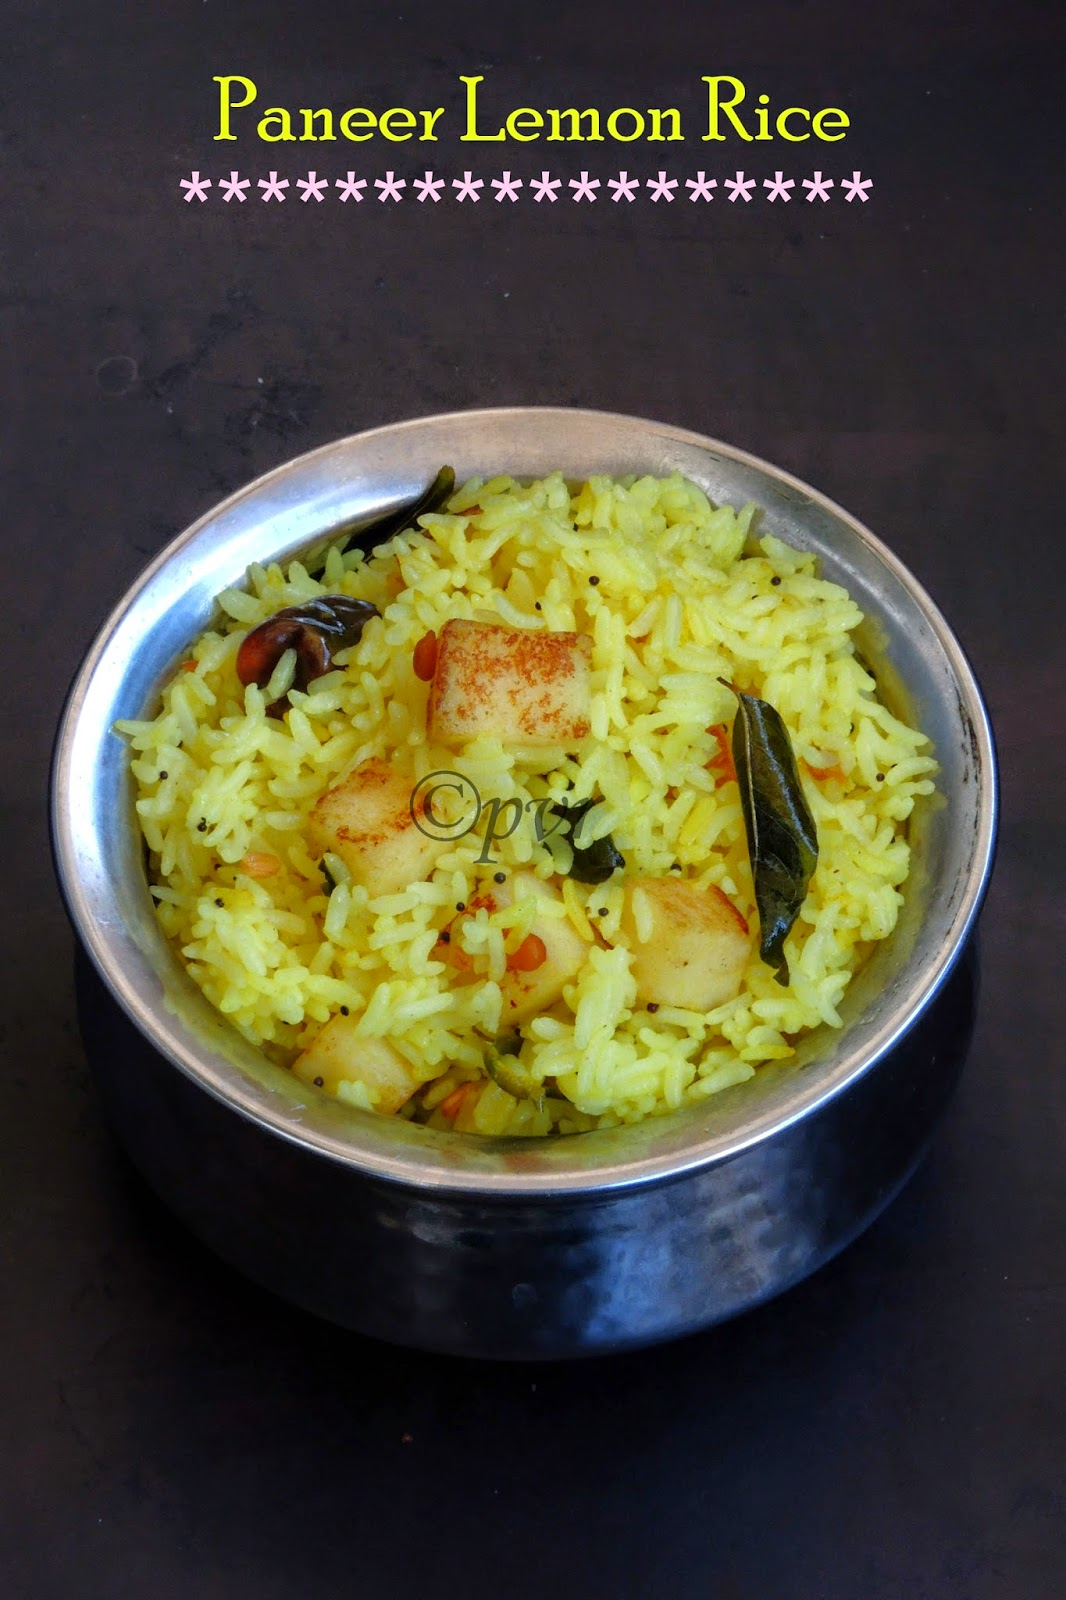 Paneer lemon rice, Lemon rice with paneer cubes